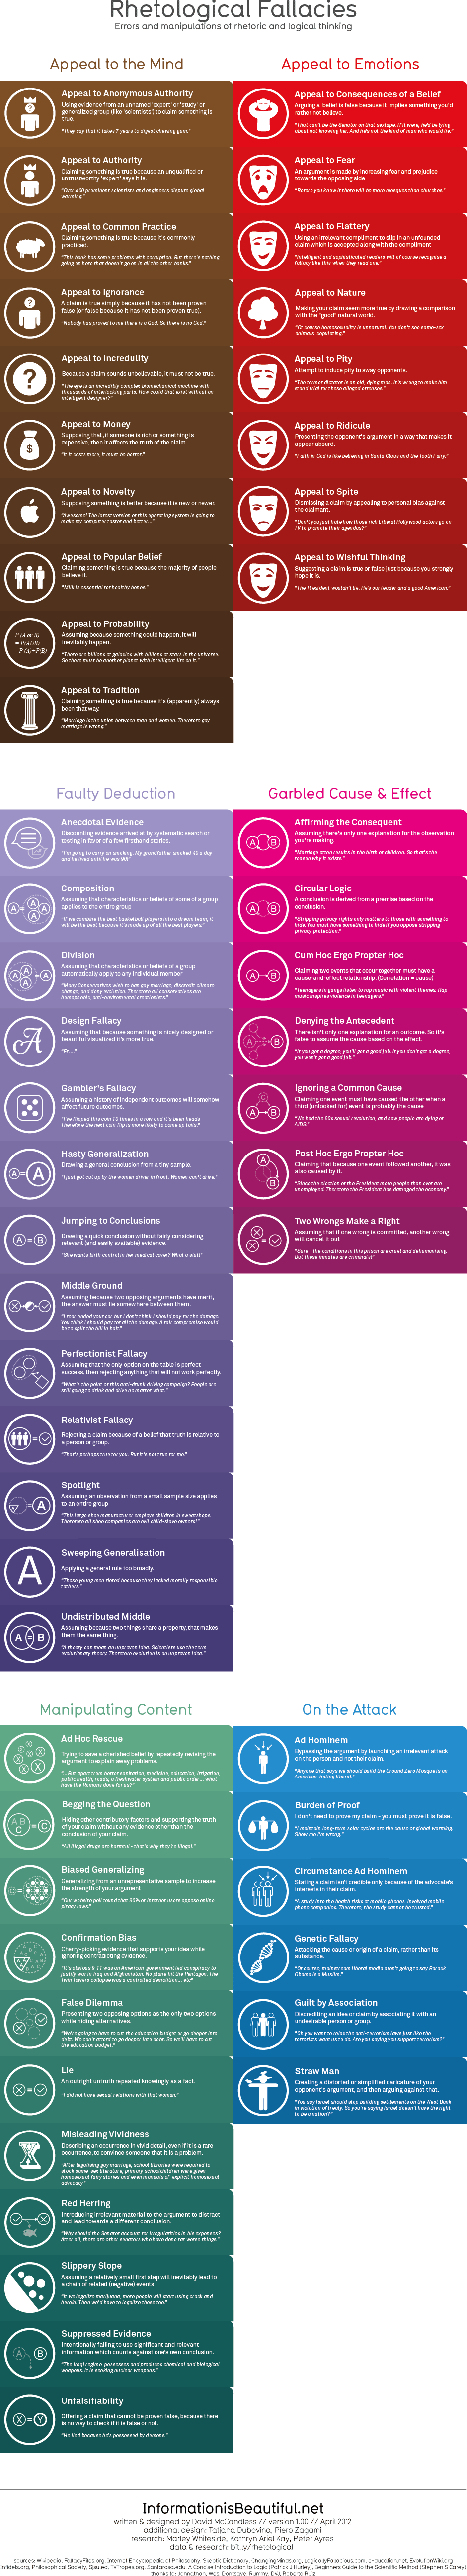 Rhetological Fallacies - Rhetorical & Logical Fallacies - InformationisBeautiful